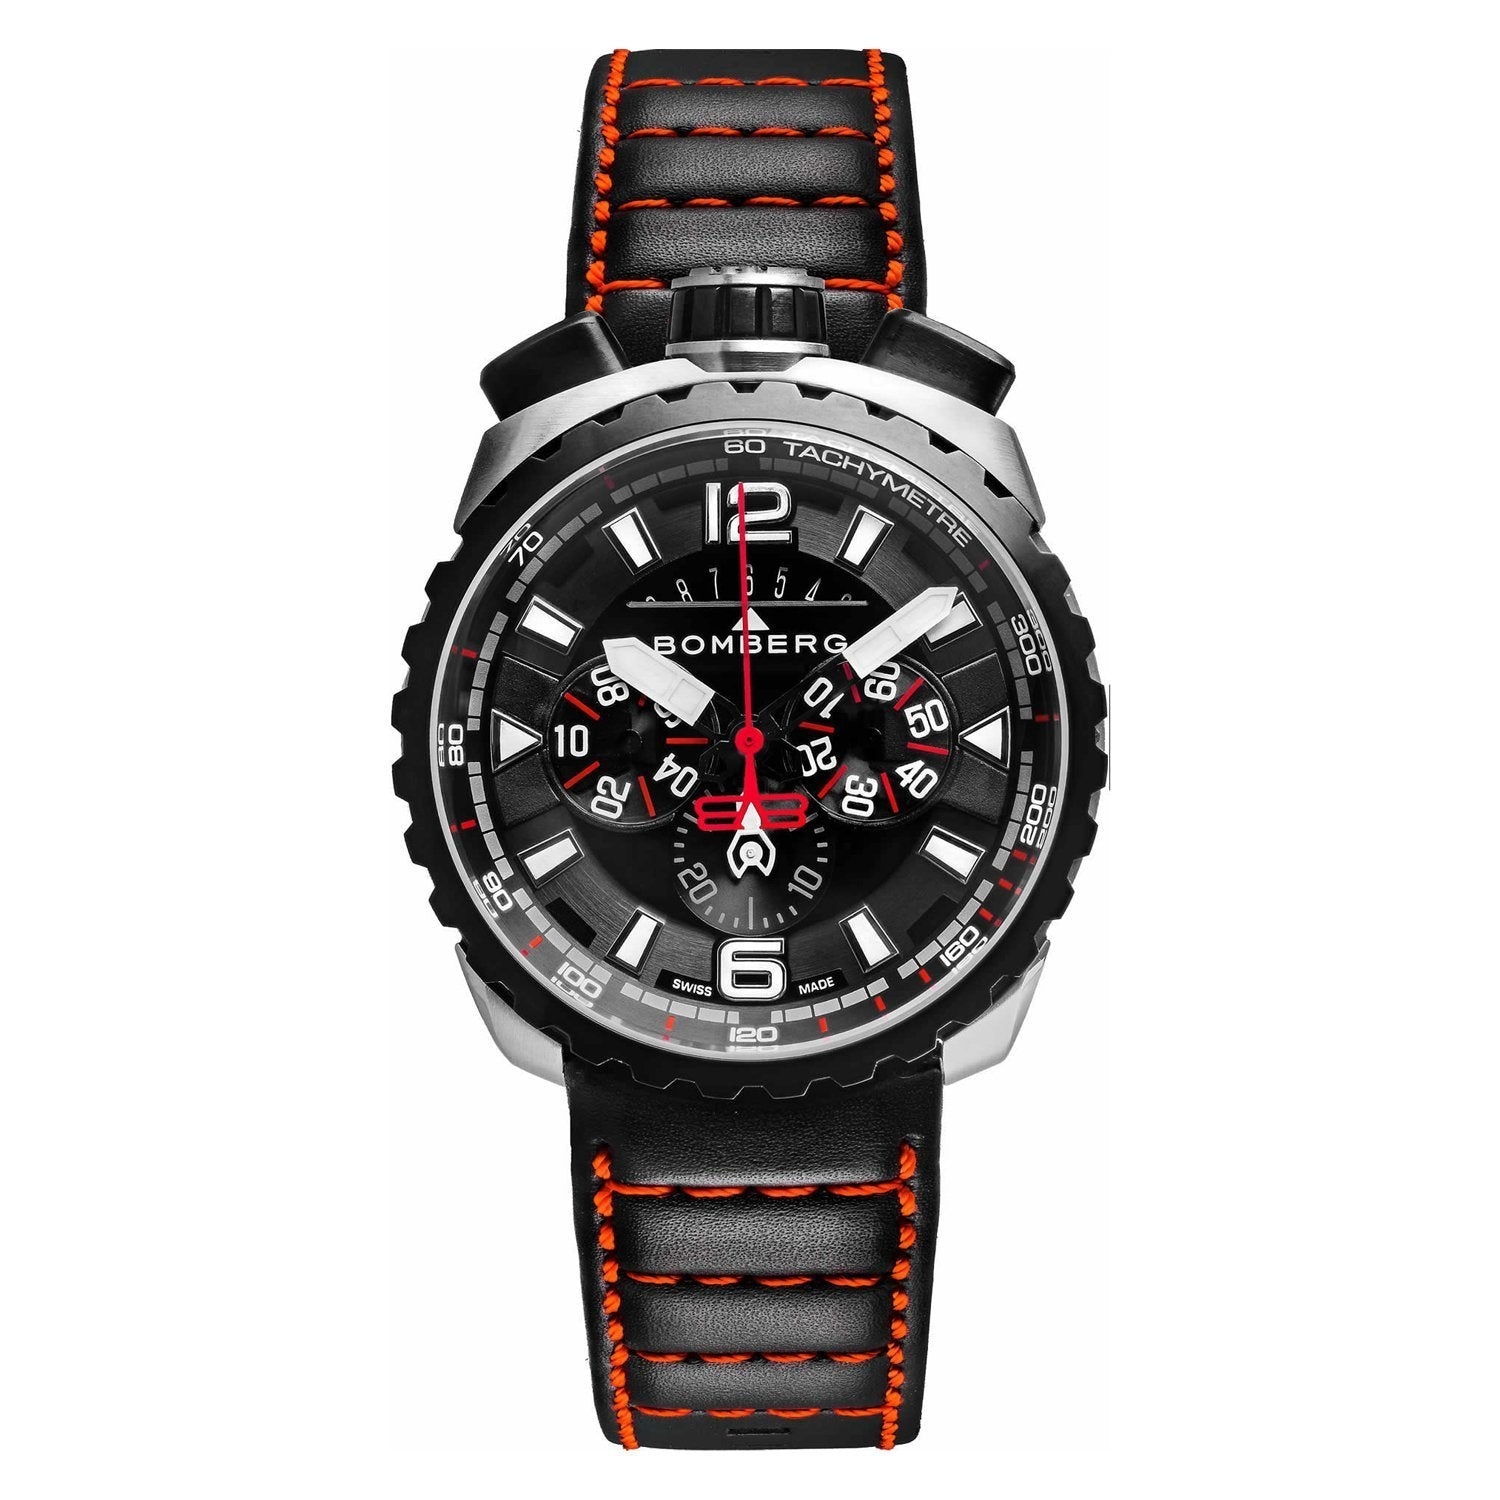 Bomberg BOLT-68 Chronograph Steel and Black PVD